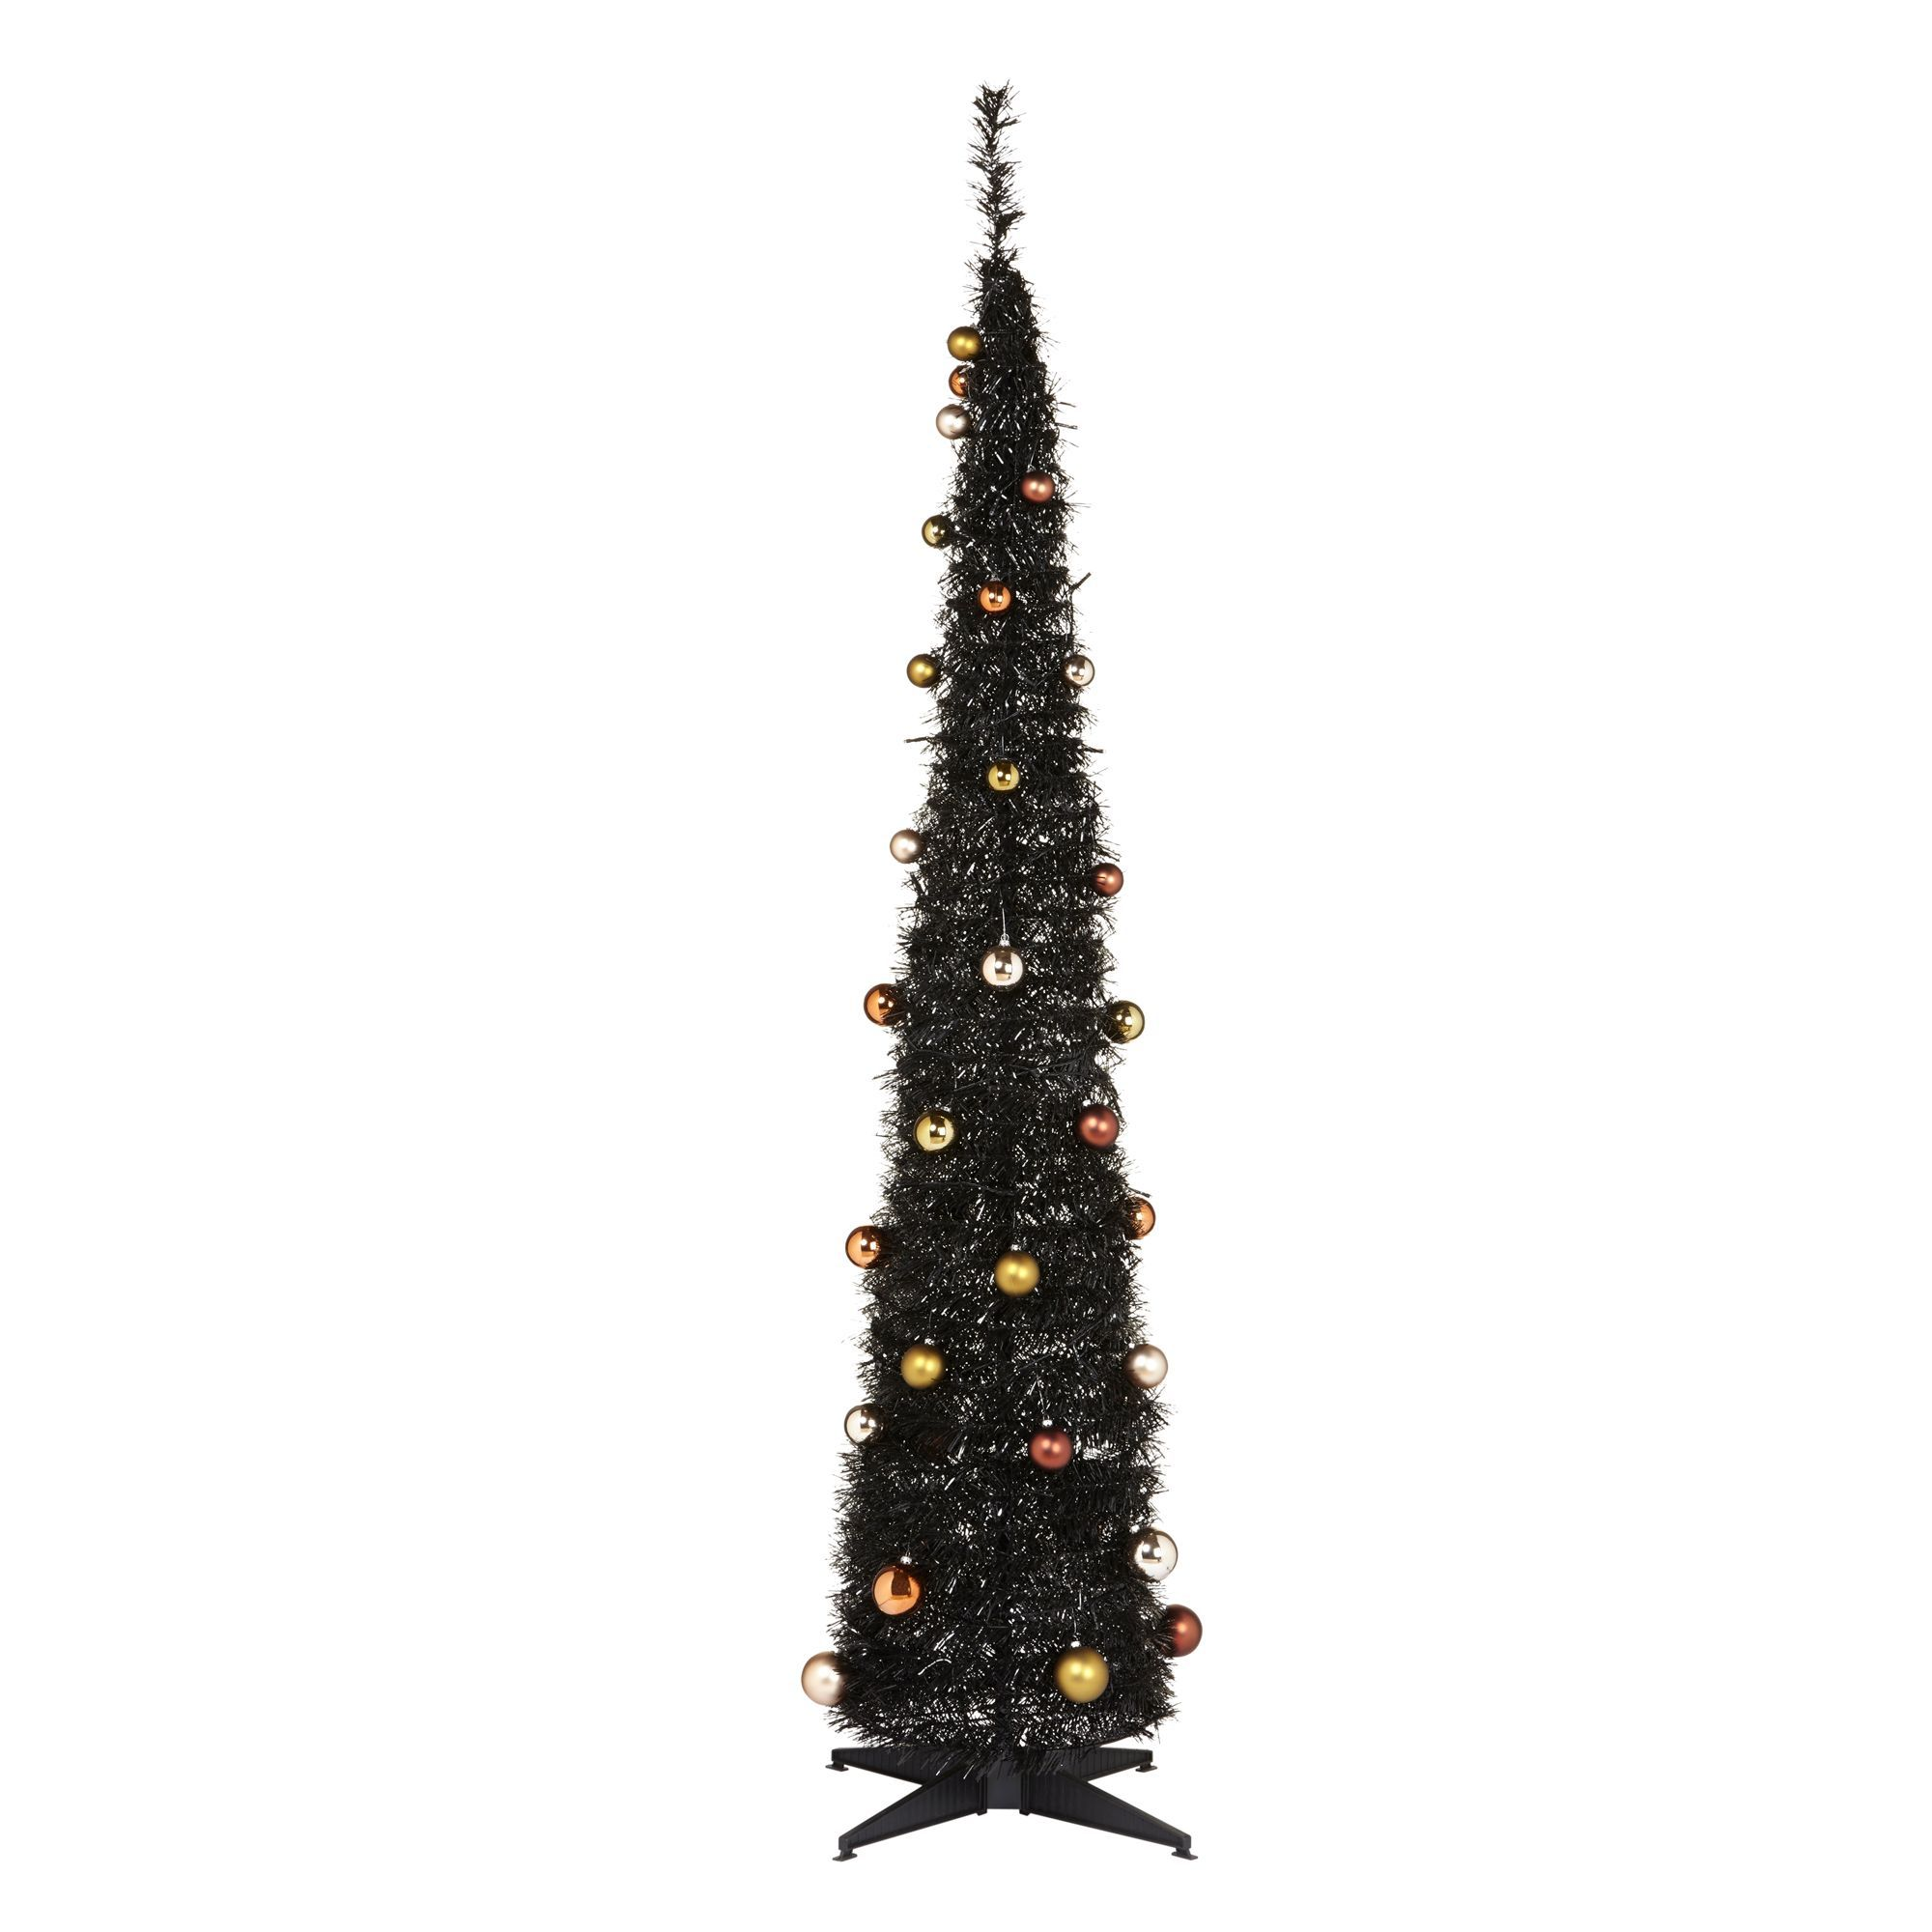 6 ft Black pop-up Black Pre-decorated Christmas tree | Departments ...